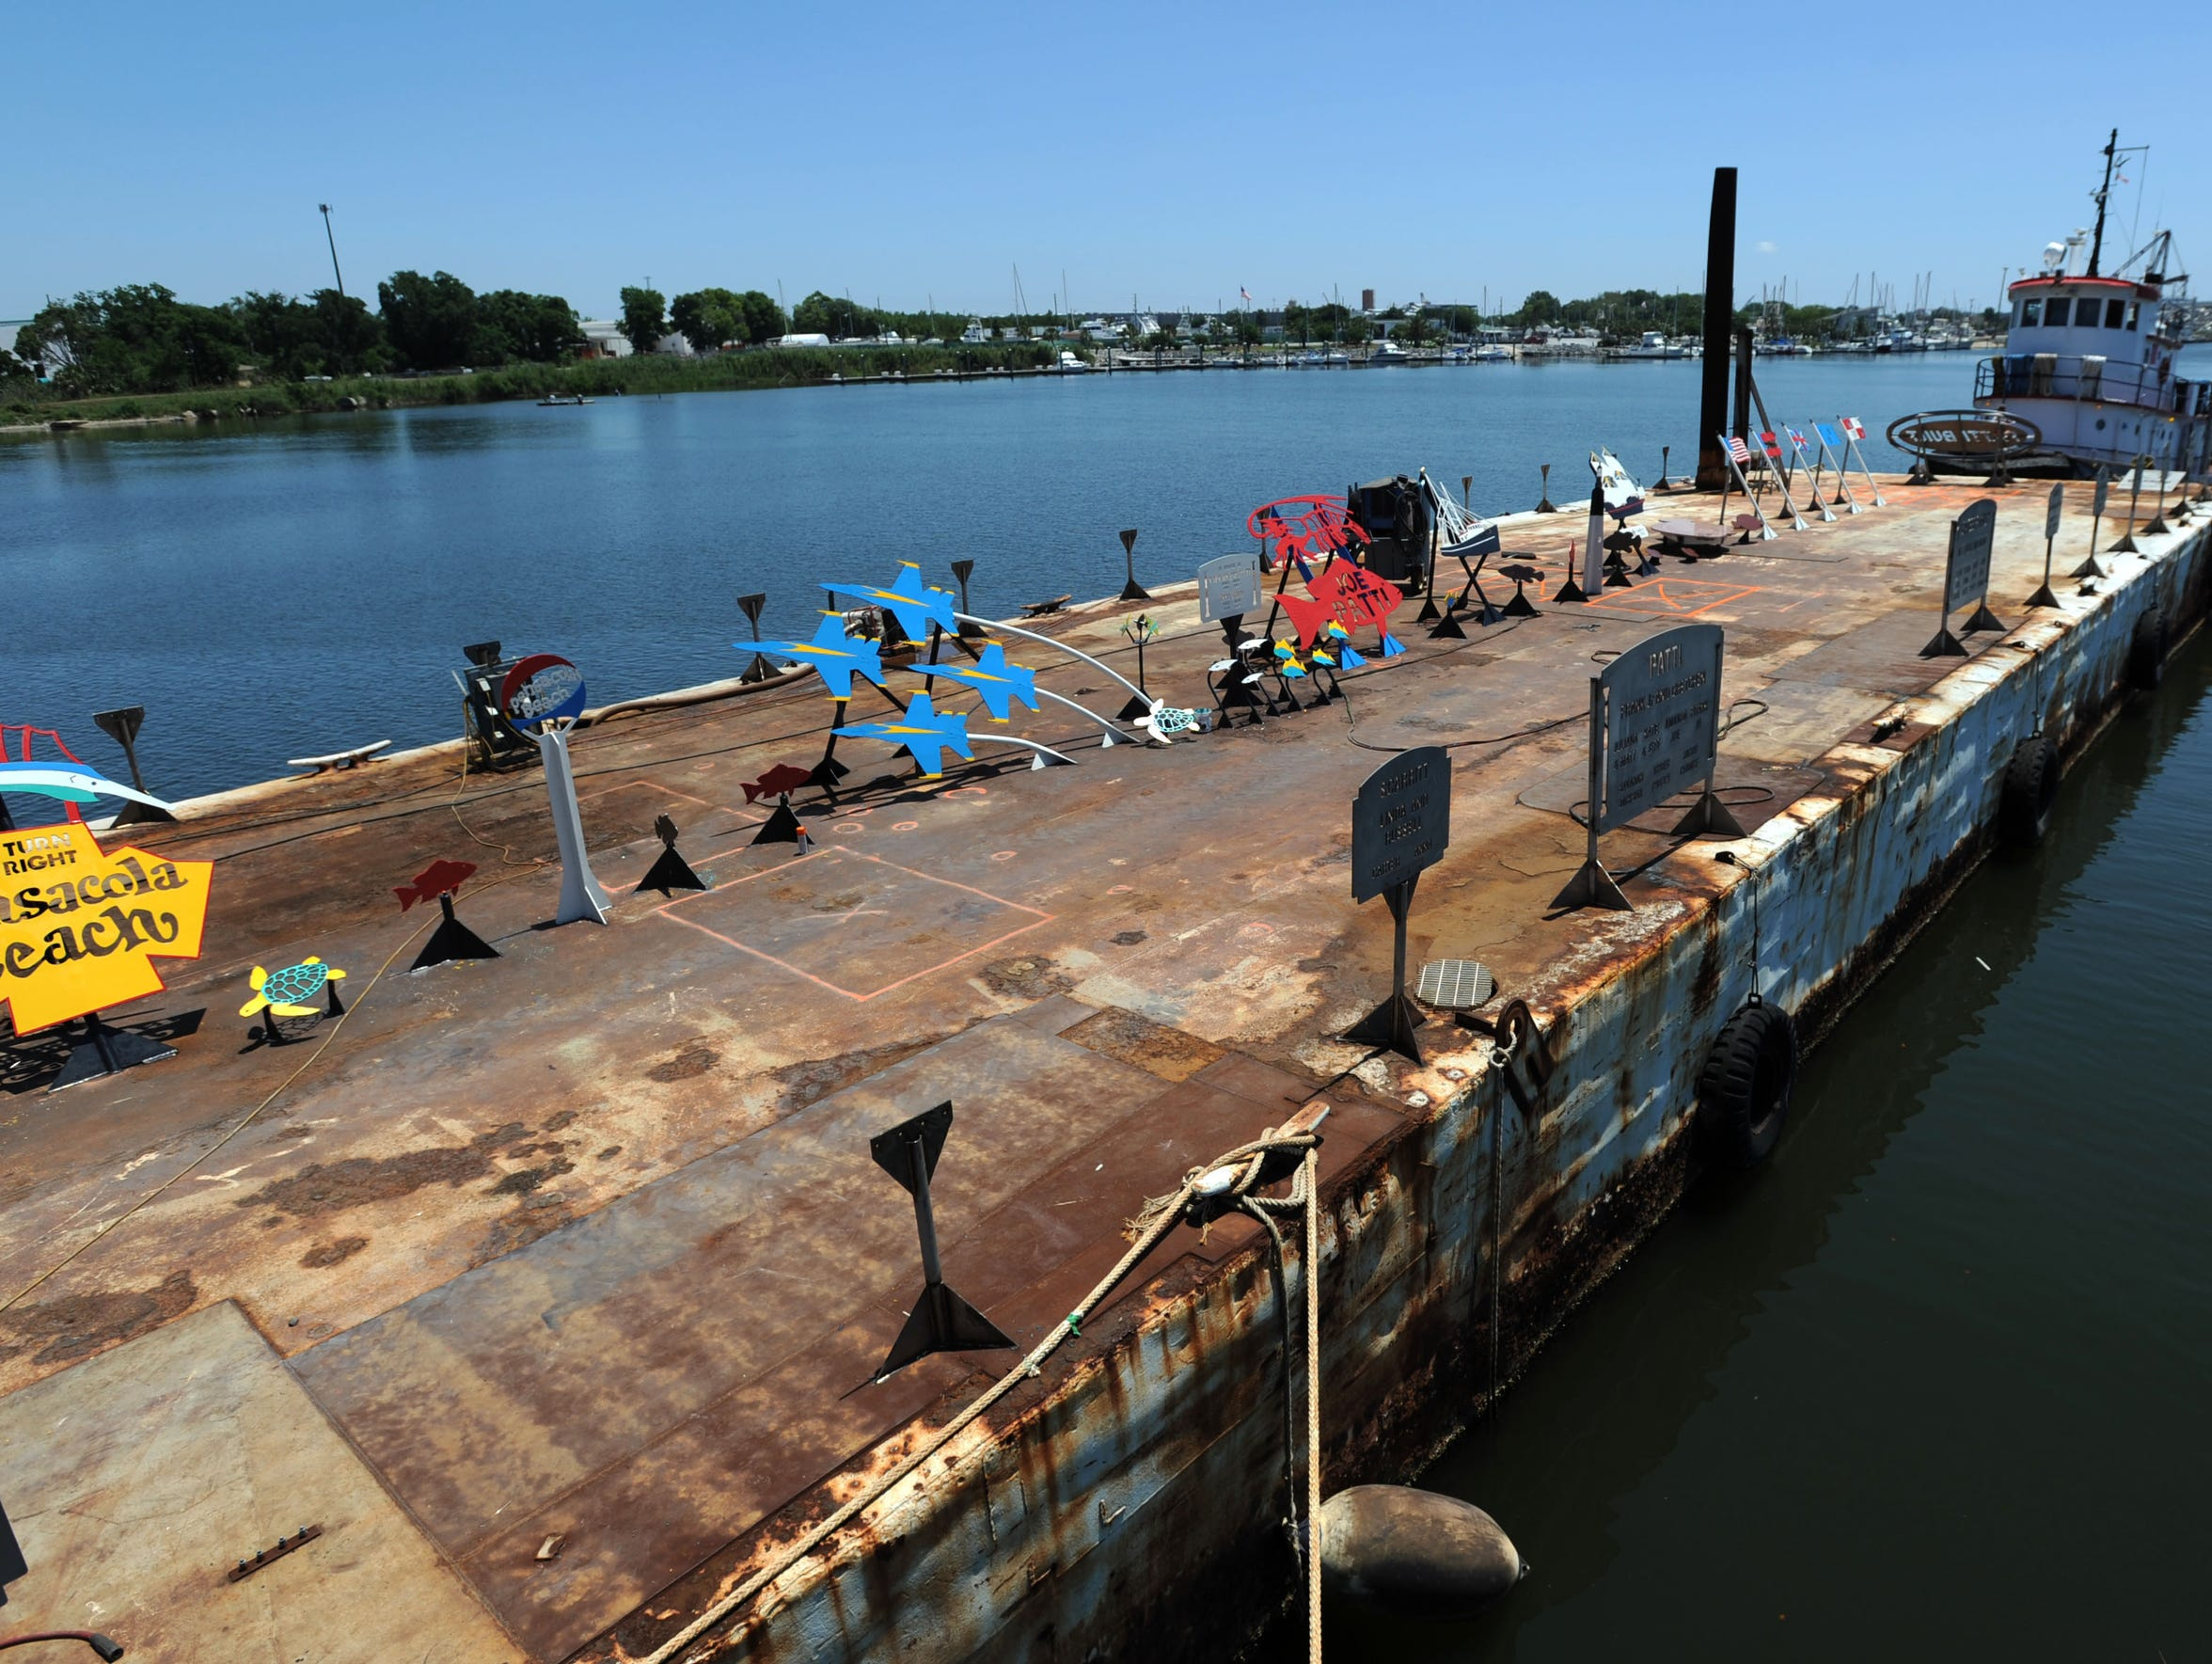 The Patti Memorial Reef barge project started as a